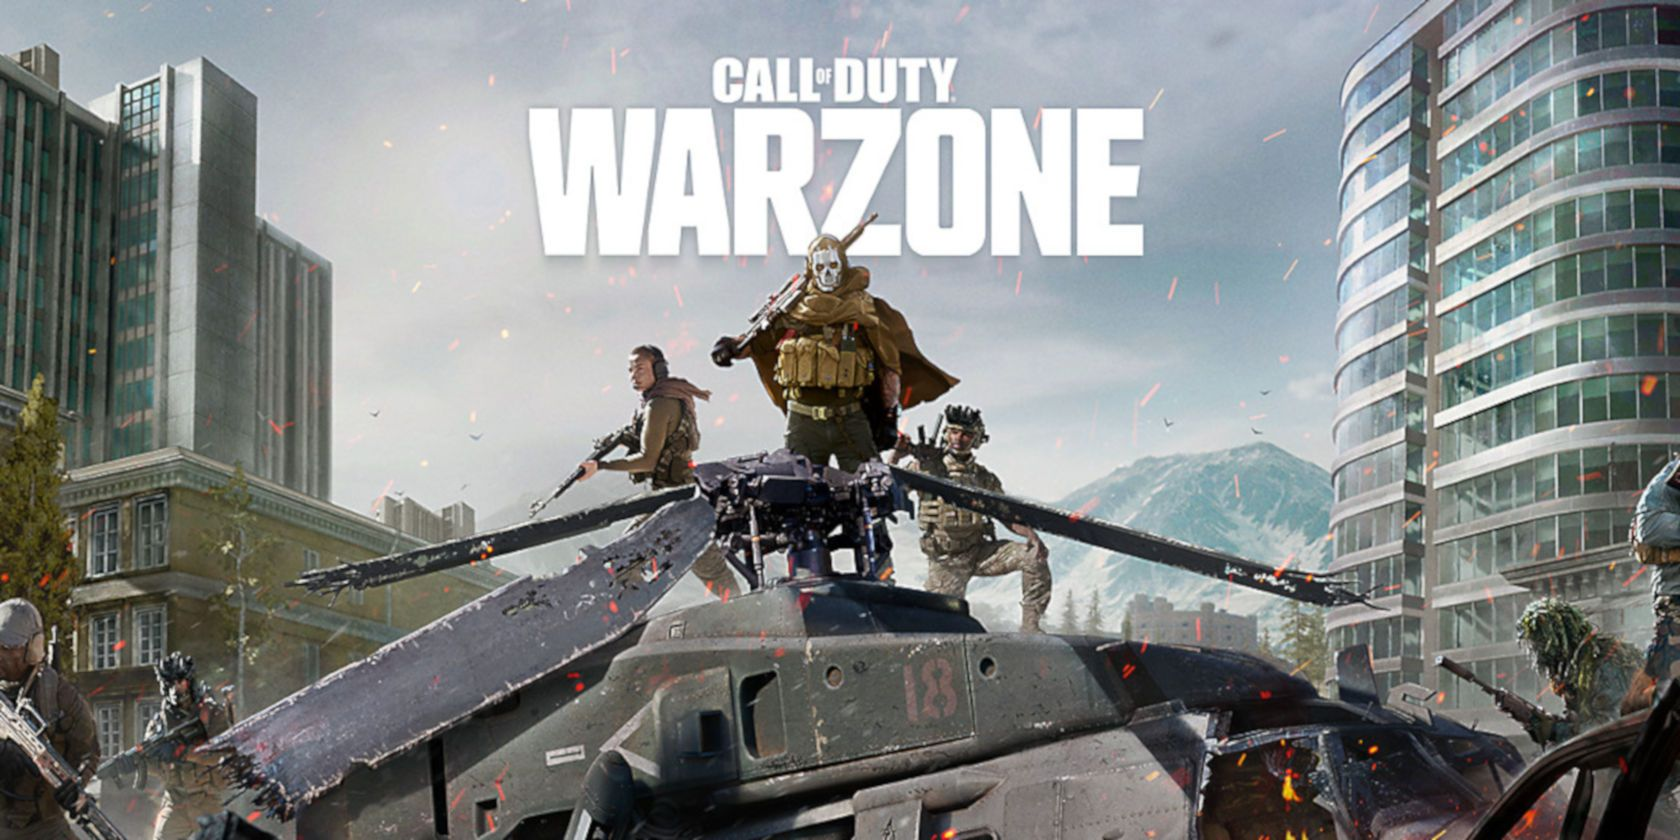 How to Win at Call of Duty: Warzone: 10 Tips and Tricks